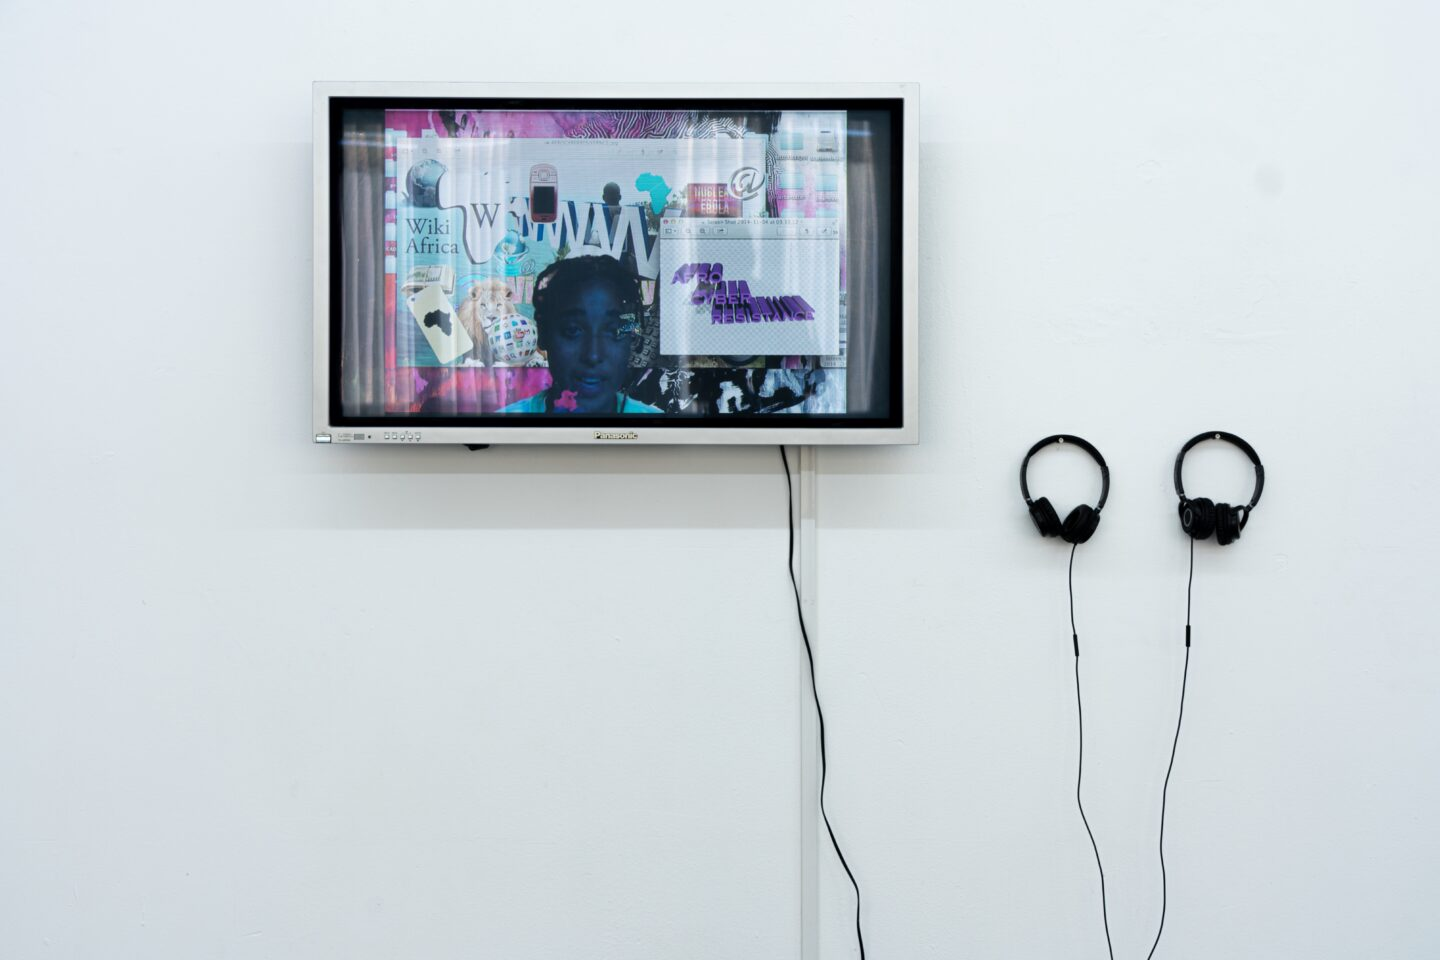 Exhibition View Groupshow «Le Soin des Possibles; view on Tabita Rezaire, Afro Cyber Resistance, 2015» at 1.1, Basel, 2019 / Photo: Jelly Luise / Courtesy: the artist